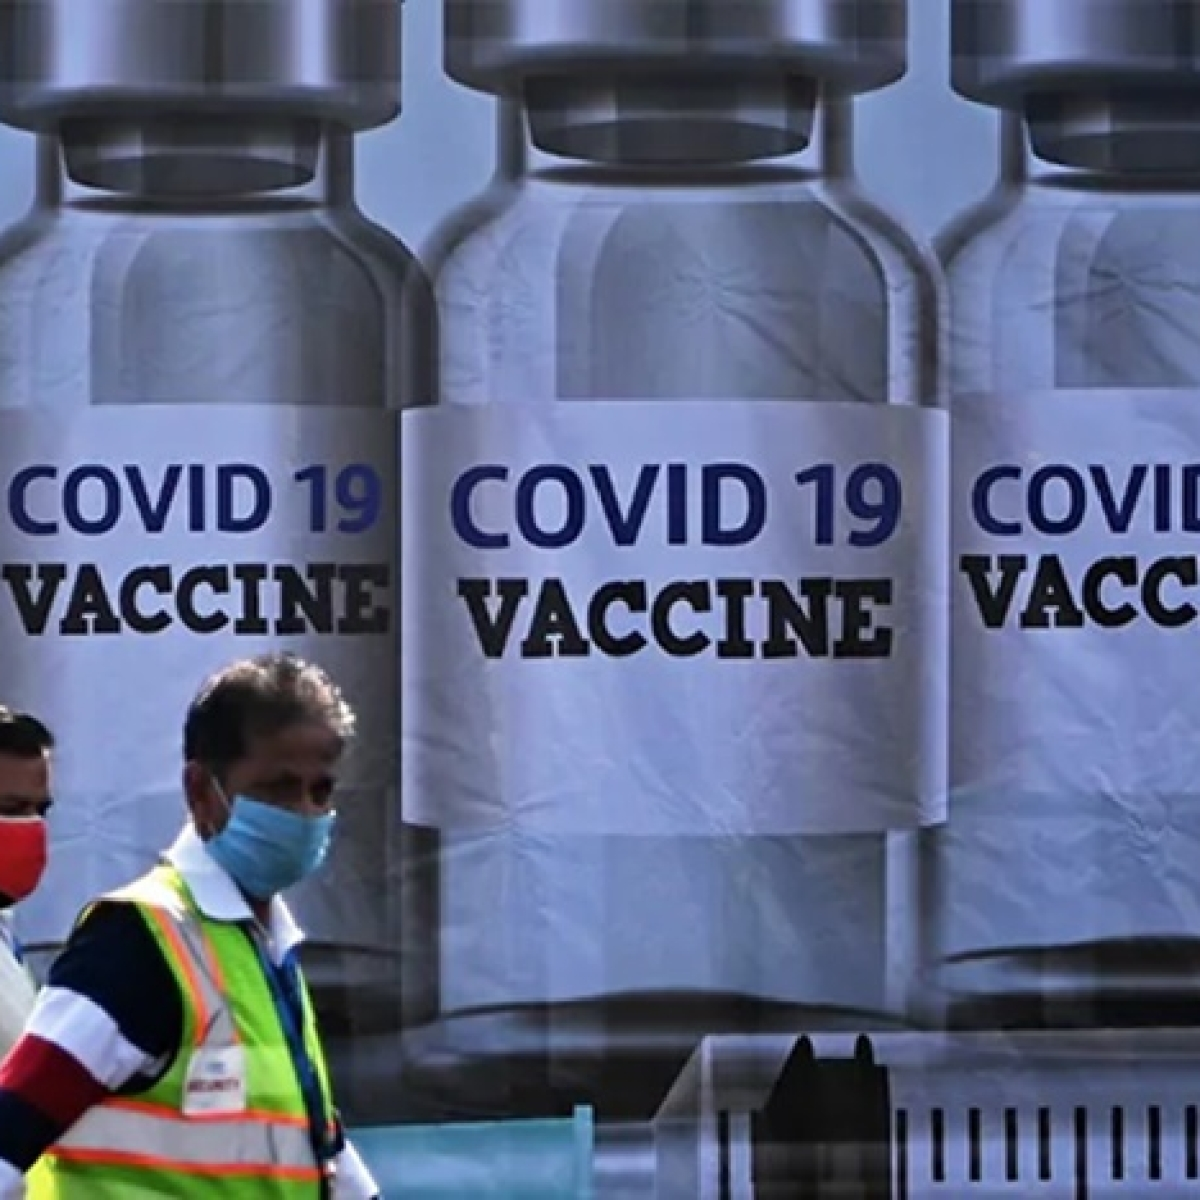 India approves two COVID-19 vaccines for emergency use - What is the difference between Covishield and Covaxin?